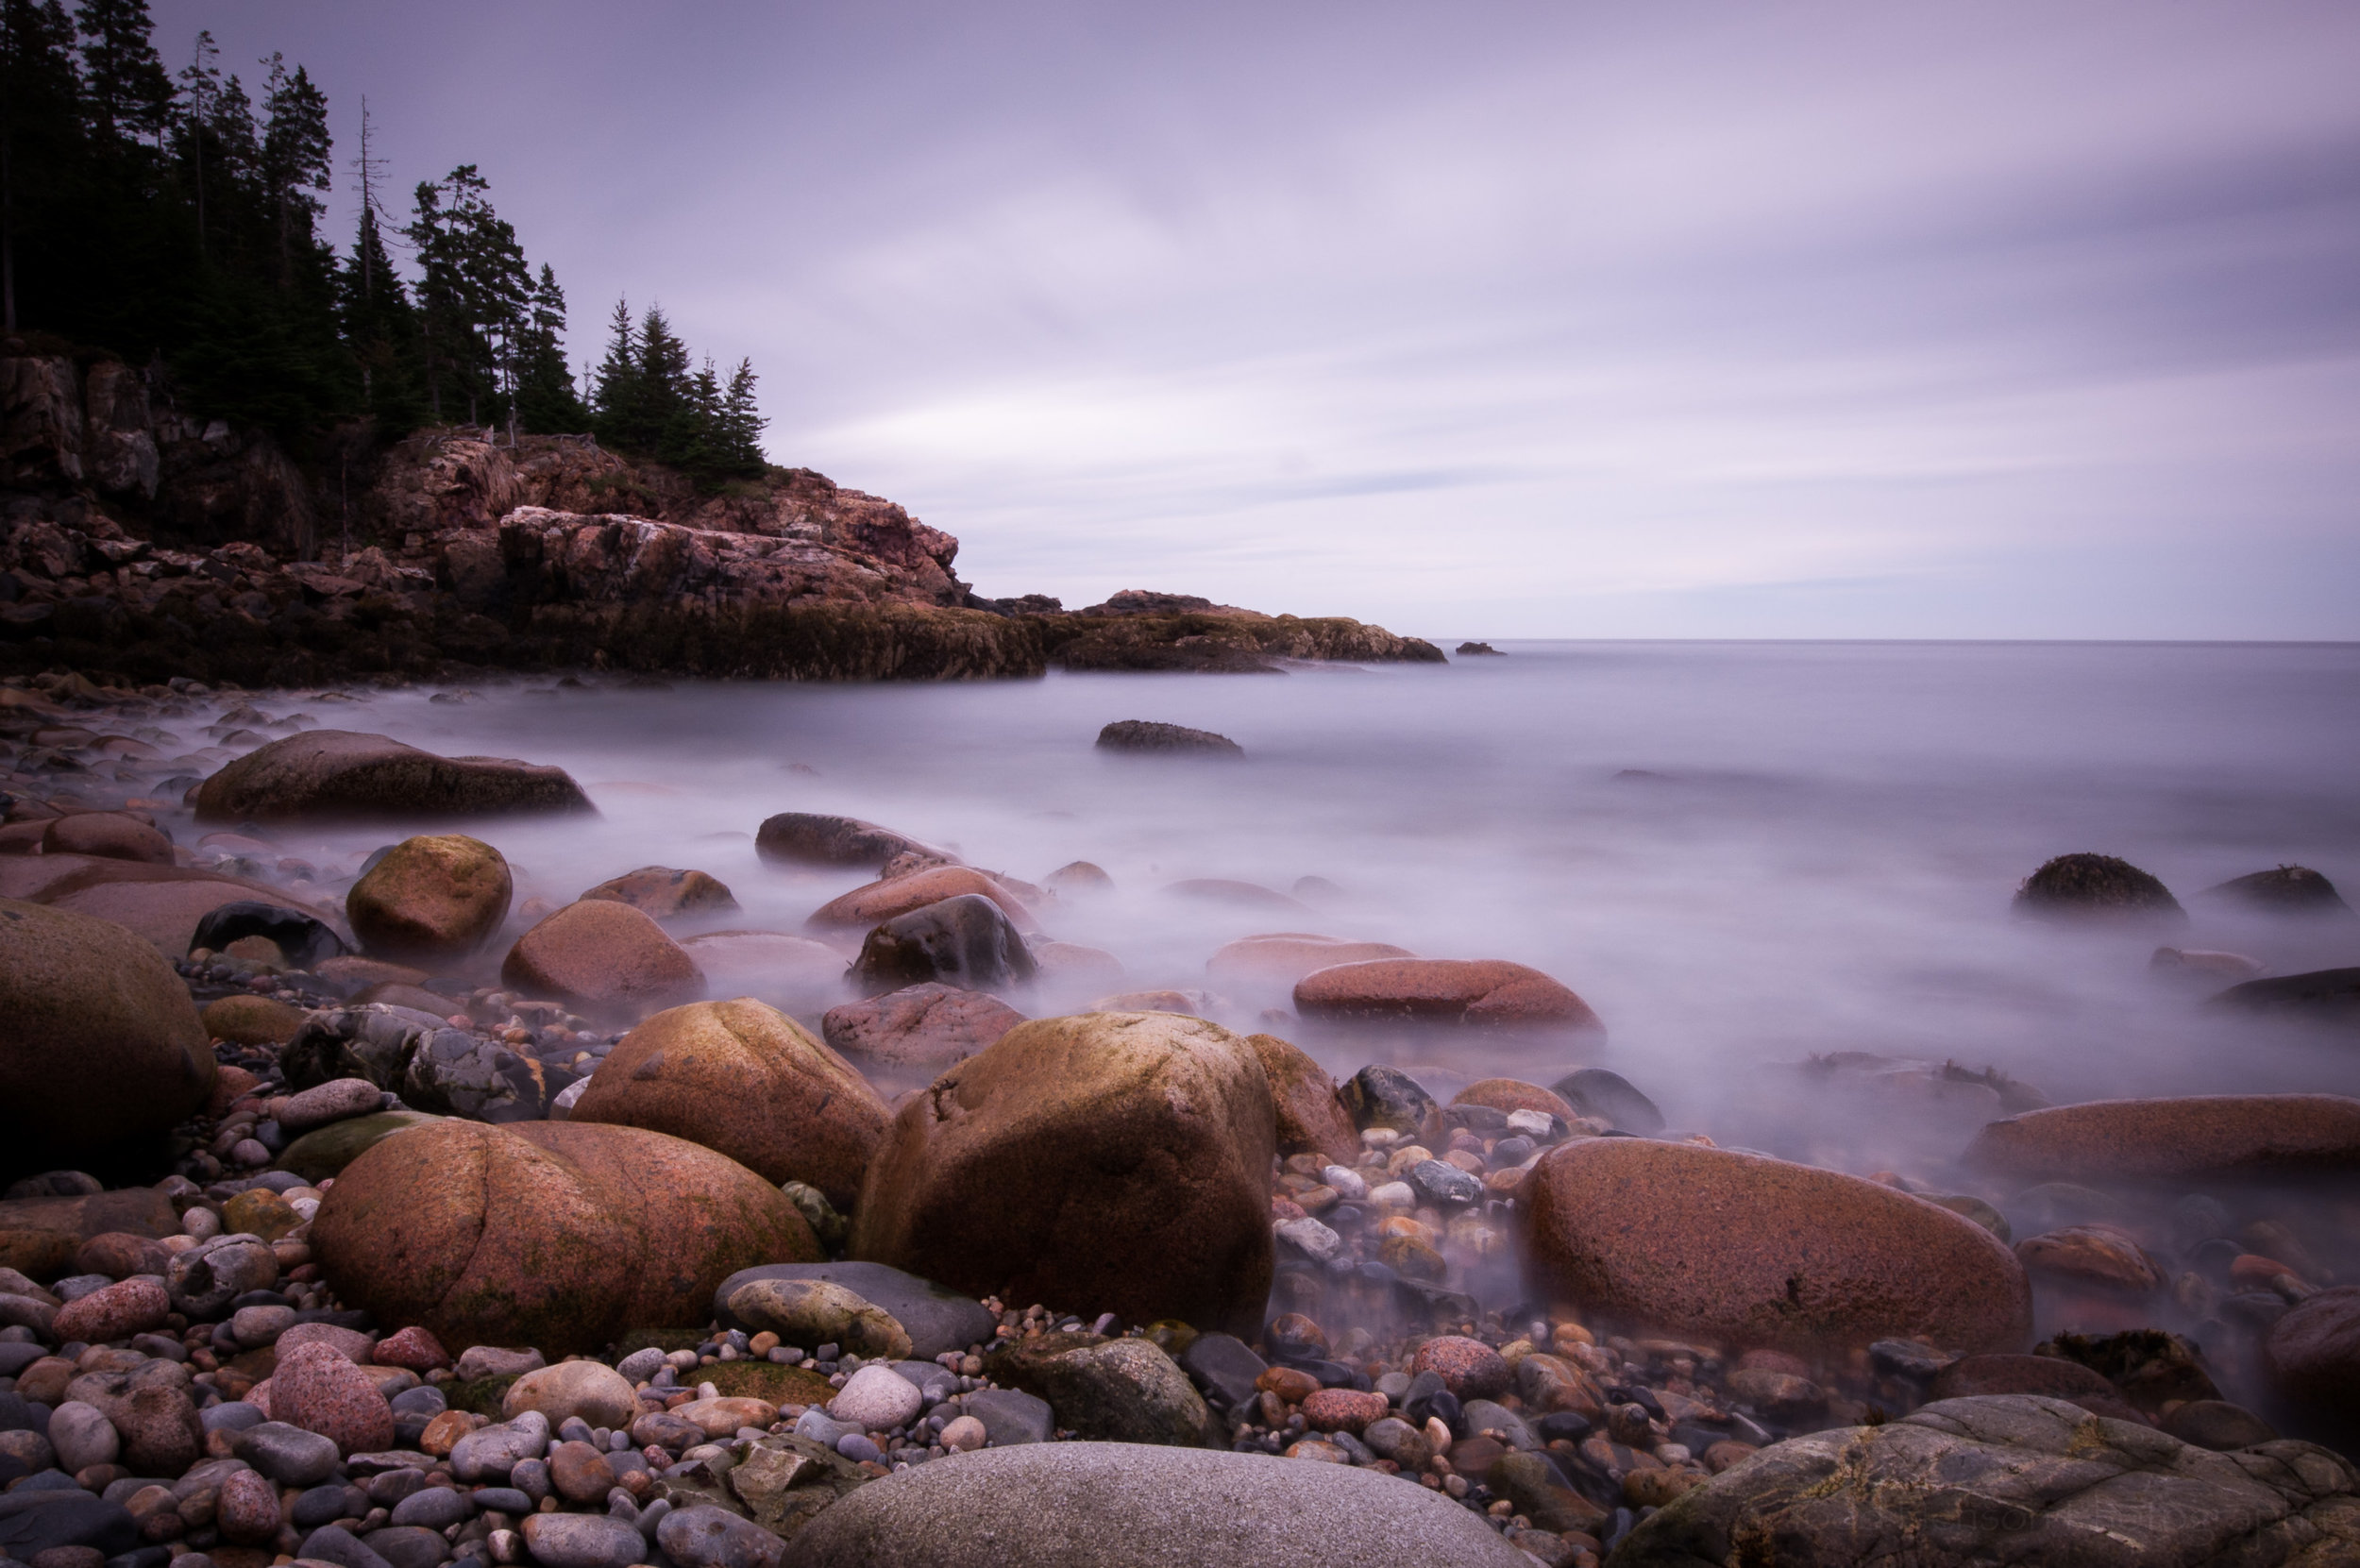 My favorite image of a rocky beach in Acadia National Park, Maine